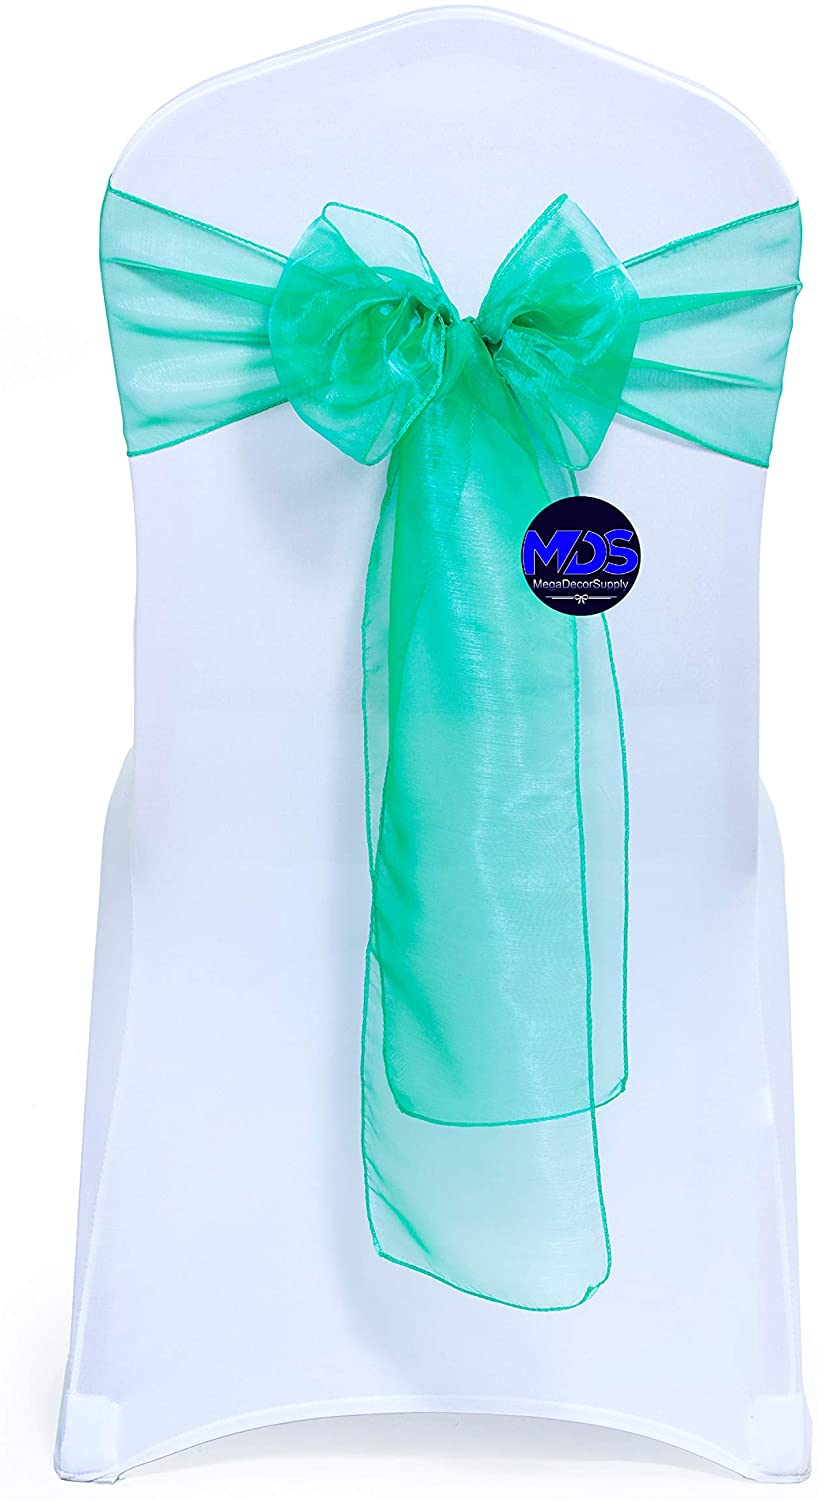 mds Pack of 125 Organza Chair Sashes/Bows sash for Wedding or Events Banquet Decor Chair Bow sash -Green